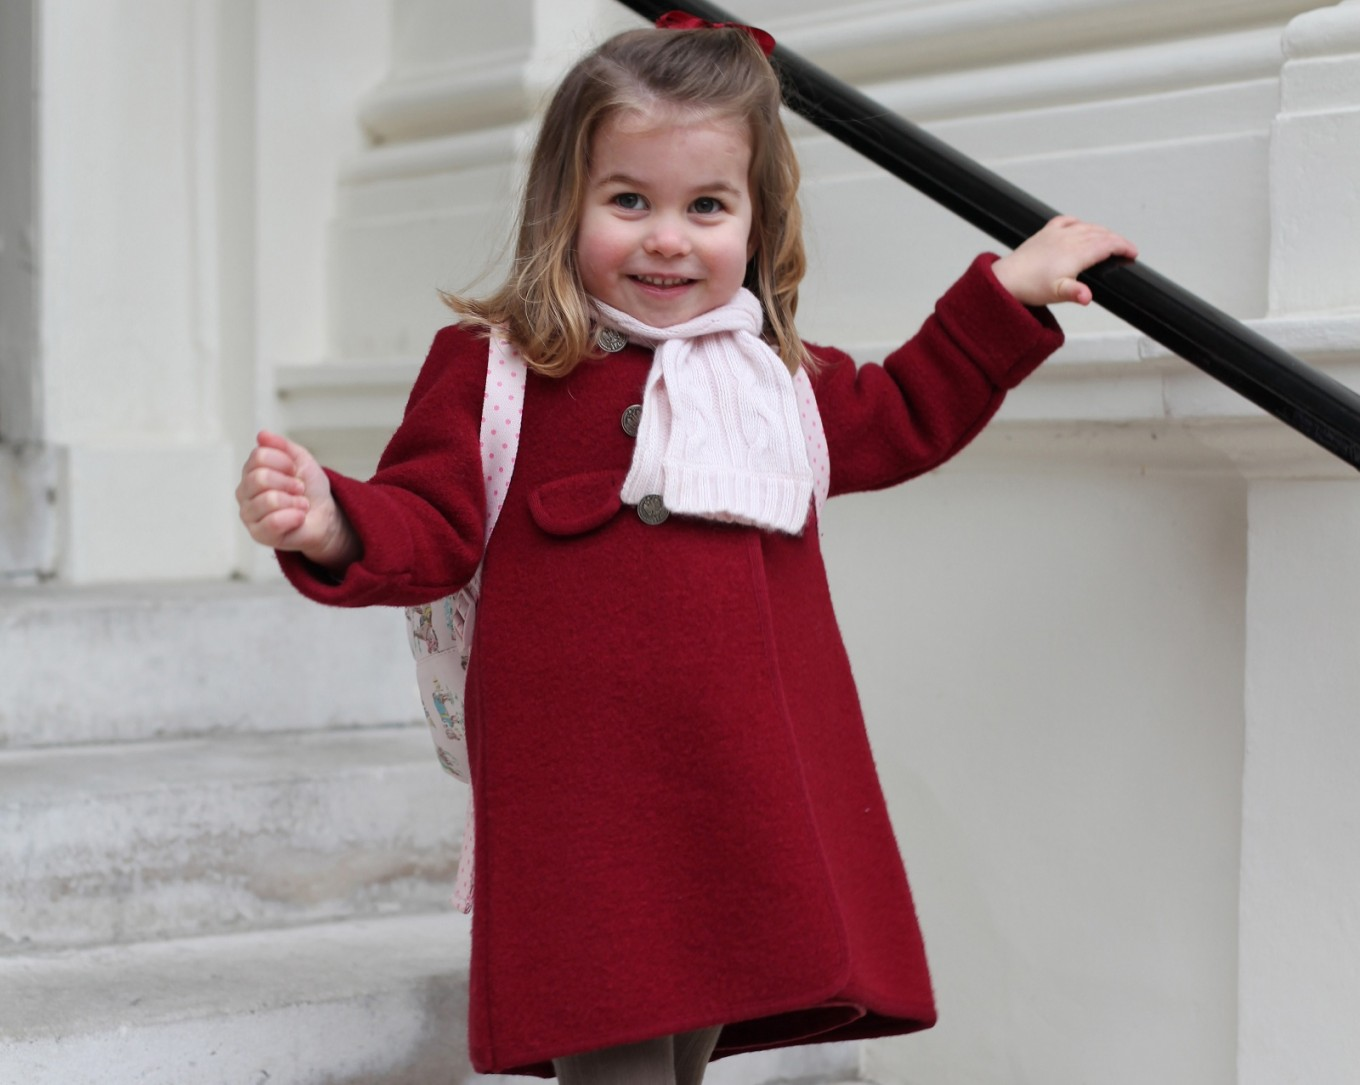 Princess Charlotte attends first day of nursery school